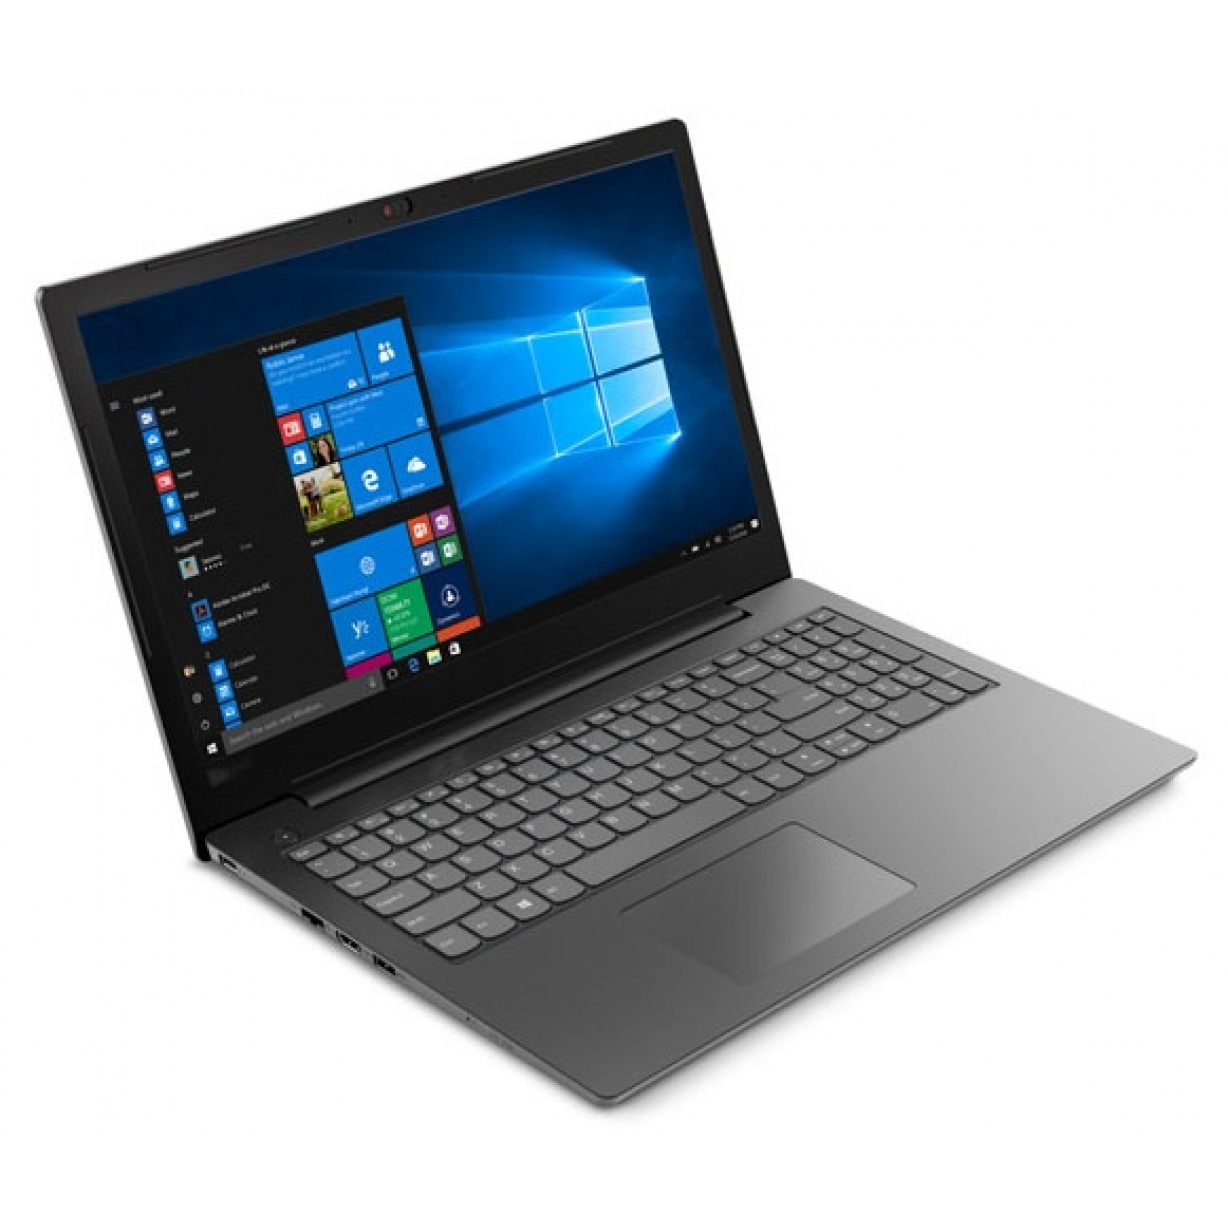 "Lenovo Essential V130-15IGM Iron Grey 15,6""FHD/i3-7020U/4GB/128GB SSD/Intel HD/WIN10/EN/ND"